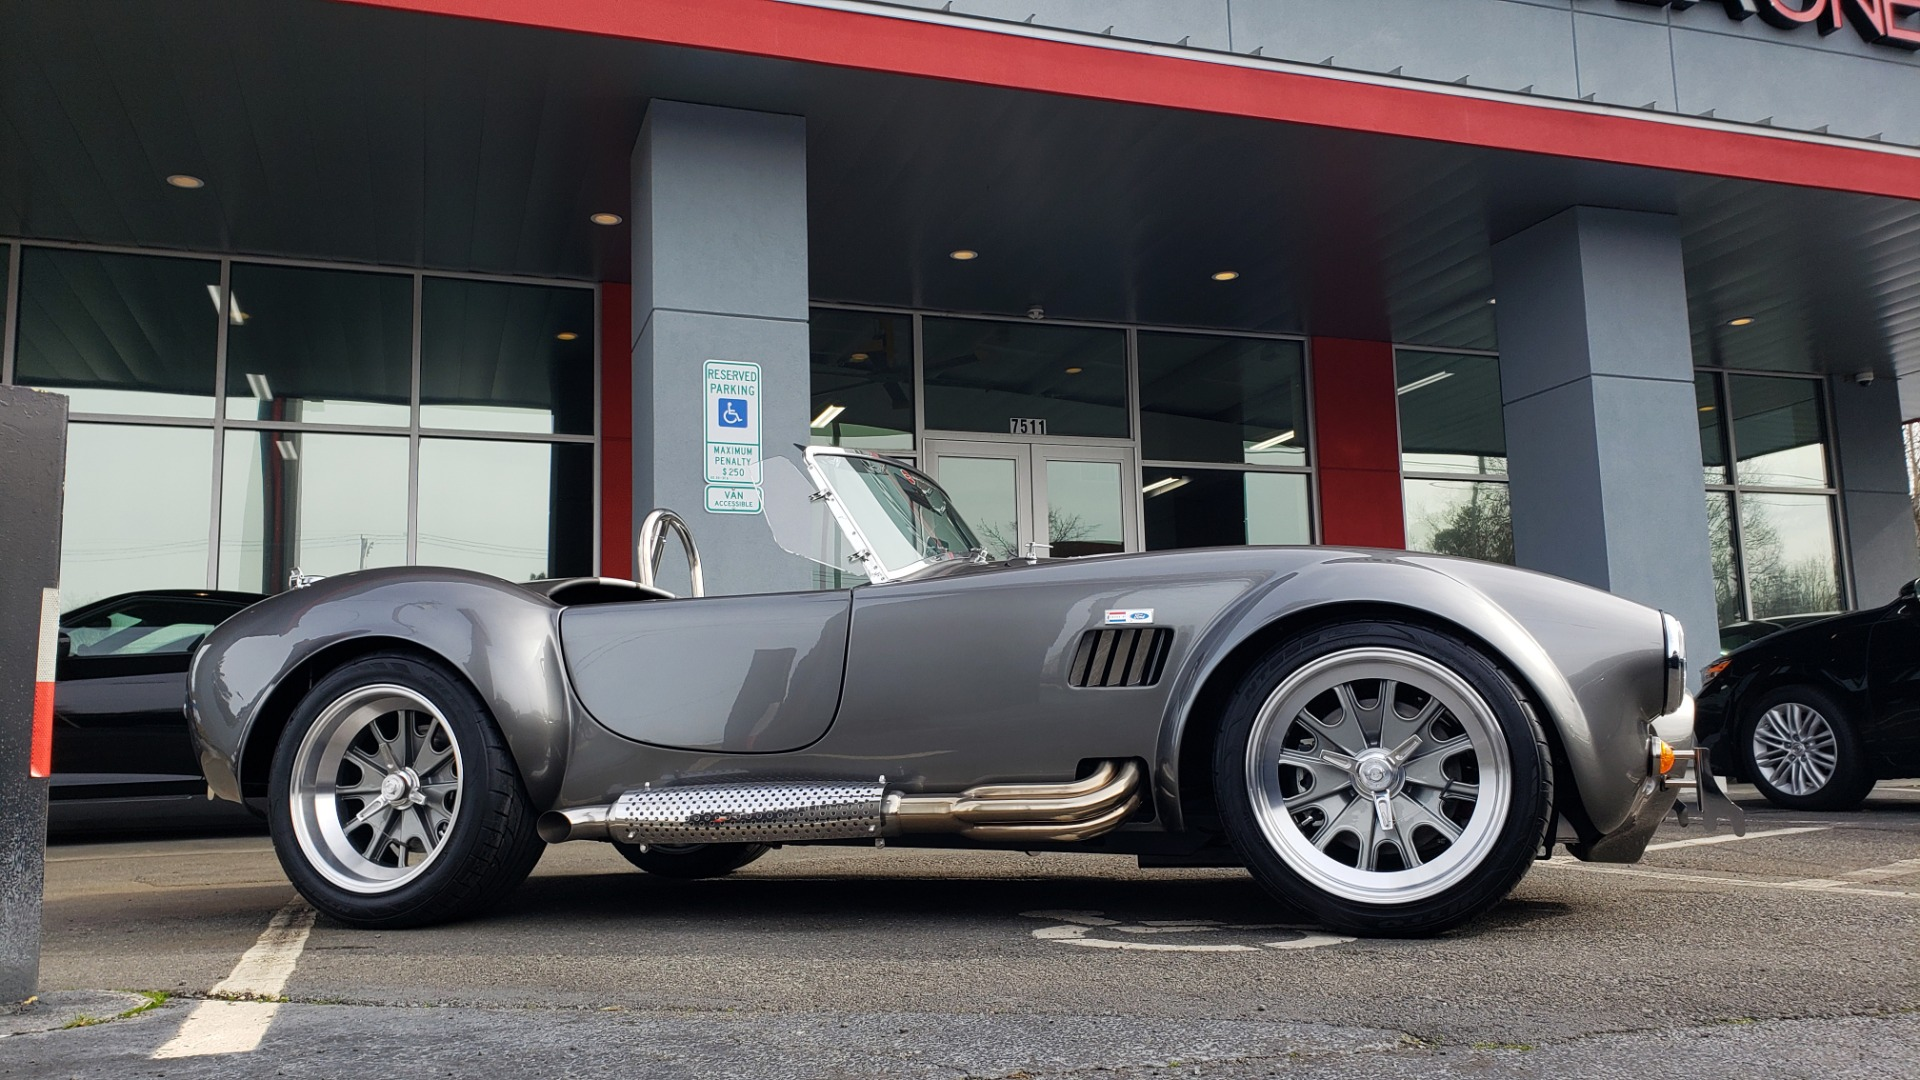 Used 1965 Ford Cobra 427 BACKDRAFT ROADSTER for sale Sold at Formula Imports in Charlotte NC 28227 7